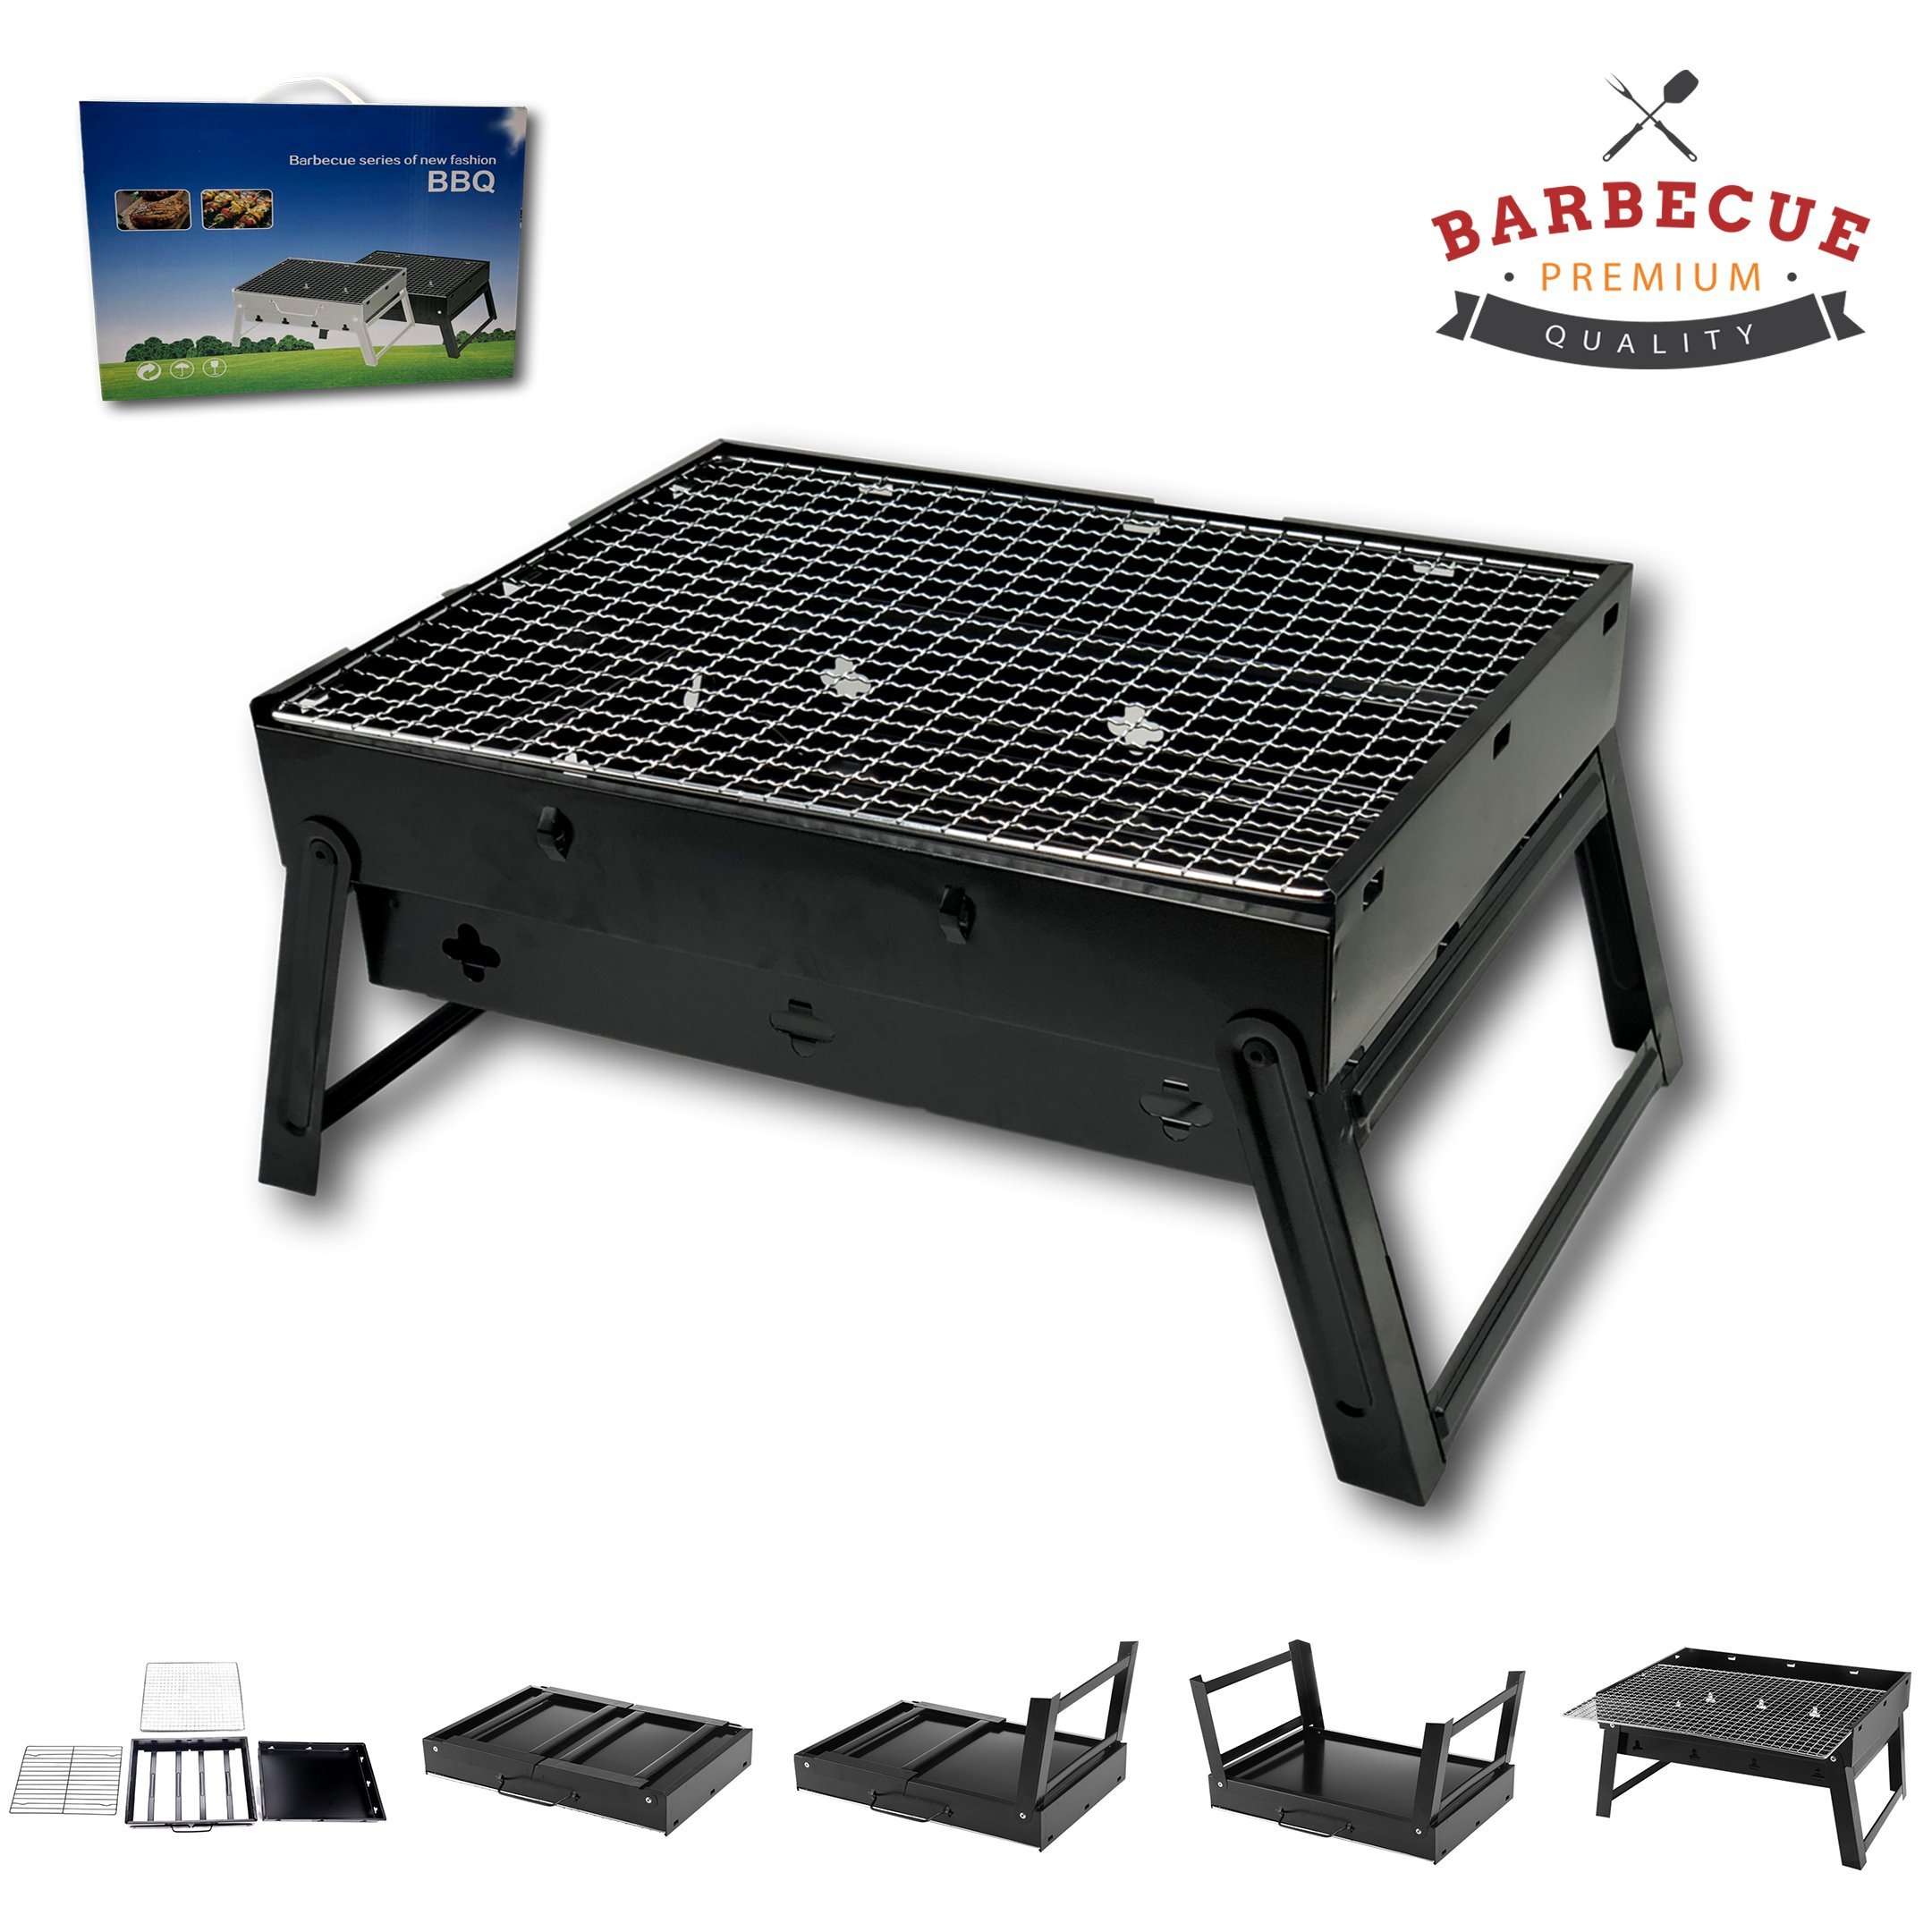 McWay Charcoal Barbeque Grill Foldable and Portable – Lightweight – Rust-Free- Easy to Set Up – For Outdoor Cooking (Small) by McWay